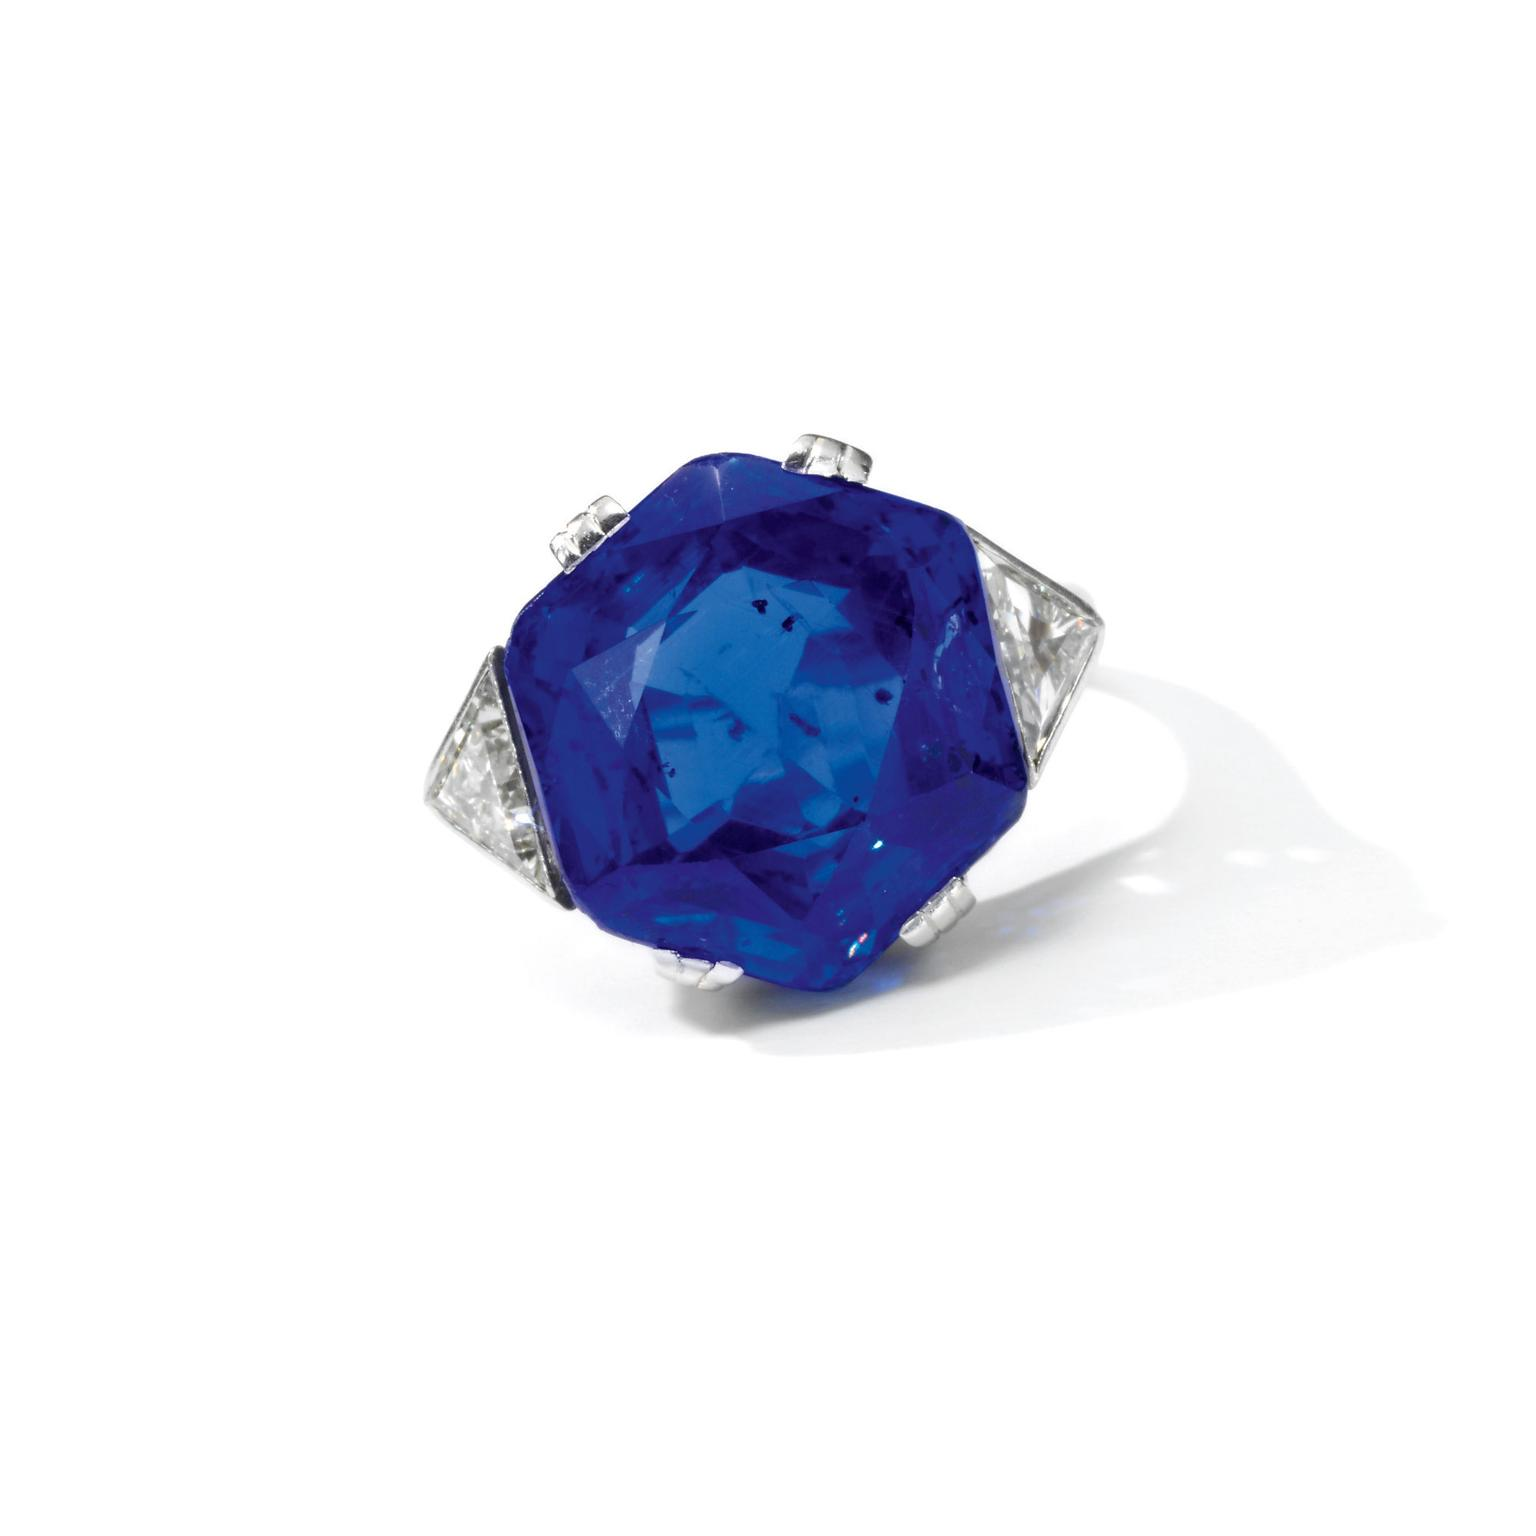 Lot 372 sapphire and diamond ring